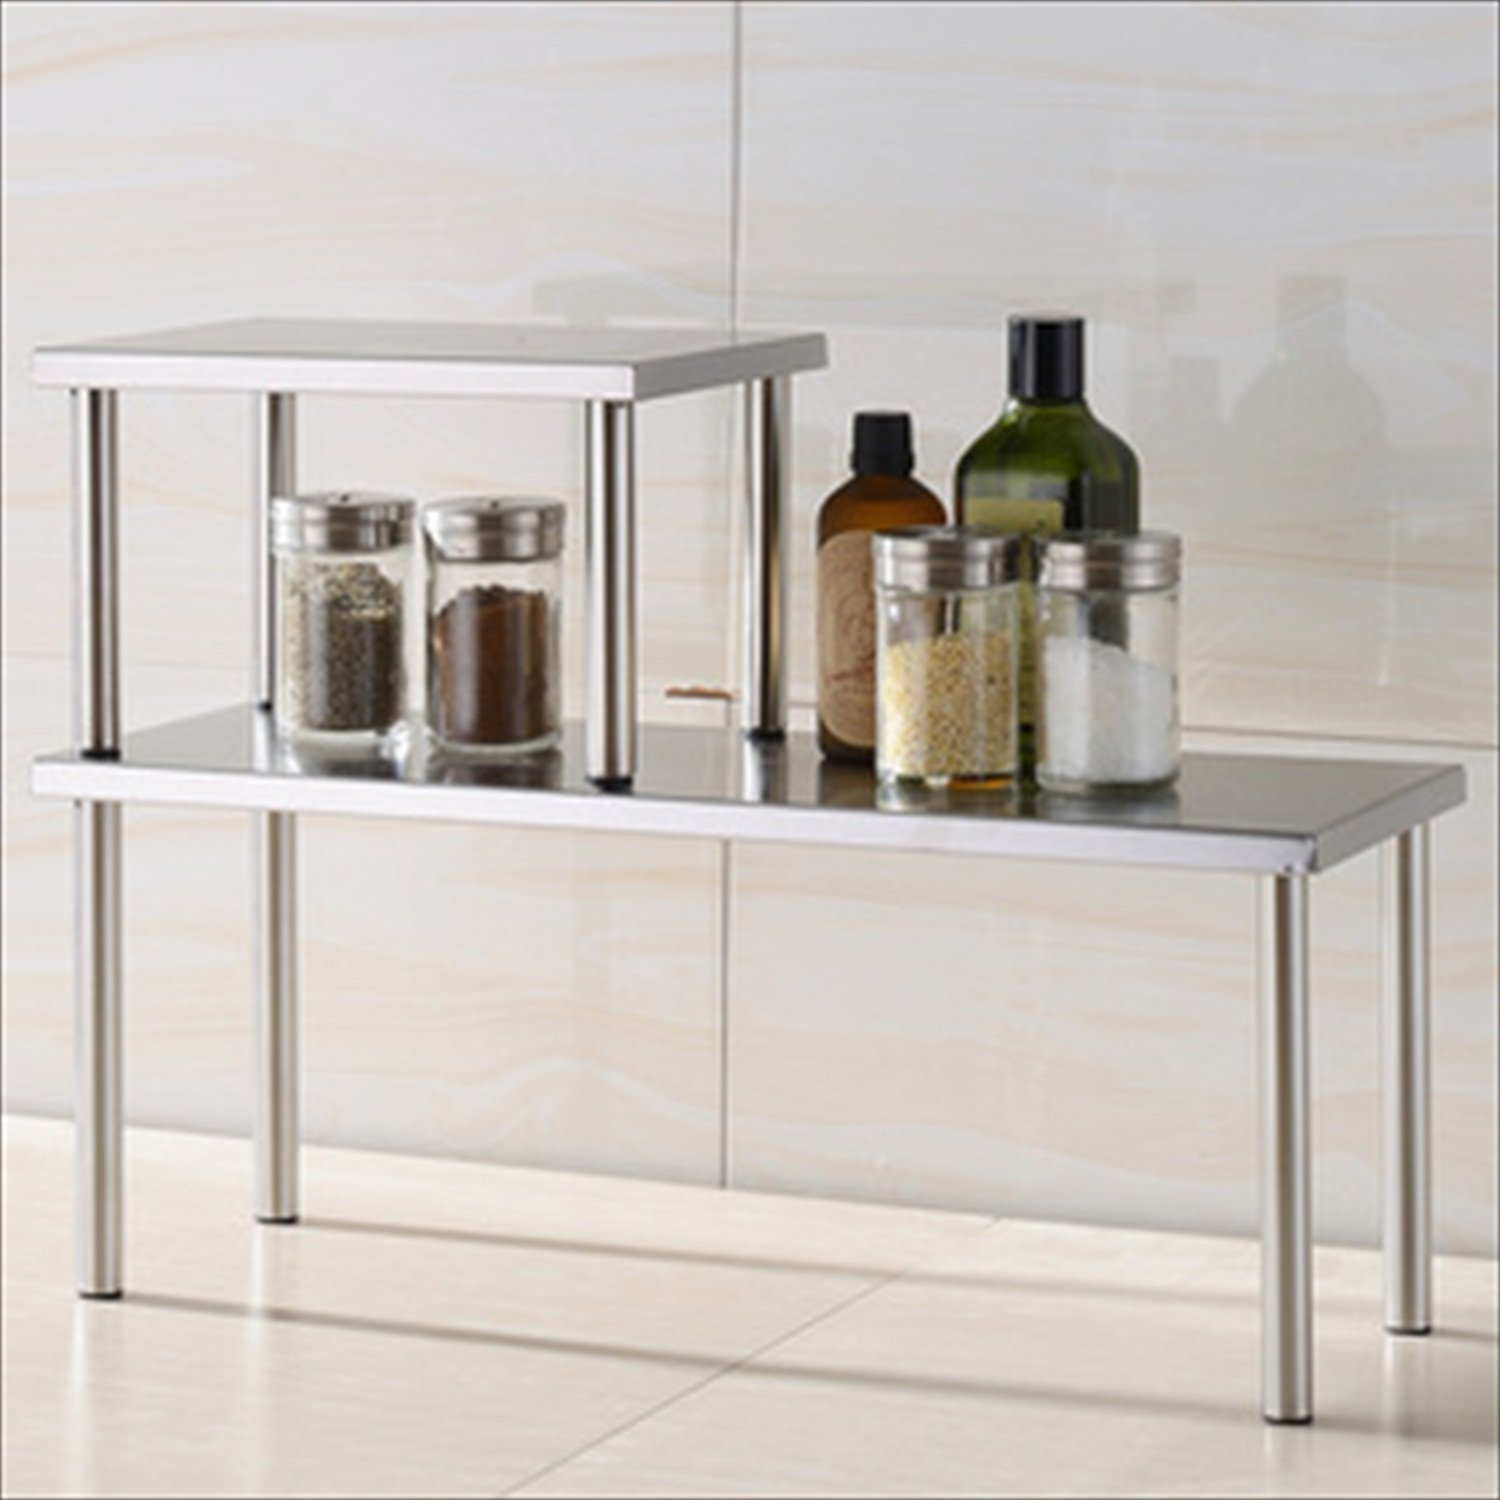 Cook N Home 2-Tier Counter Storage Shelf, Stainless Steel , New ...